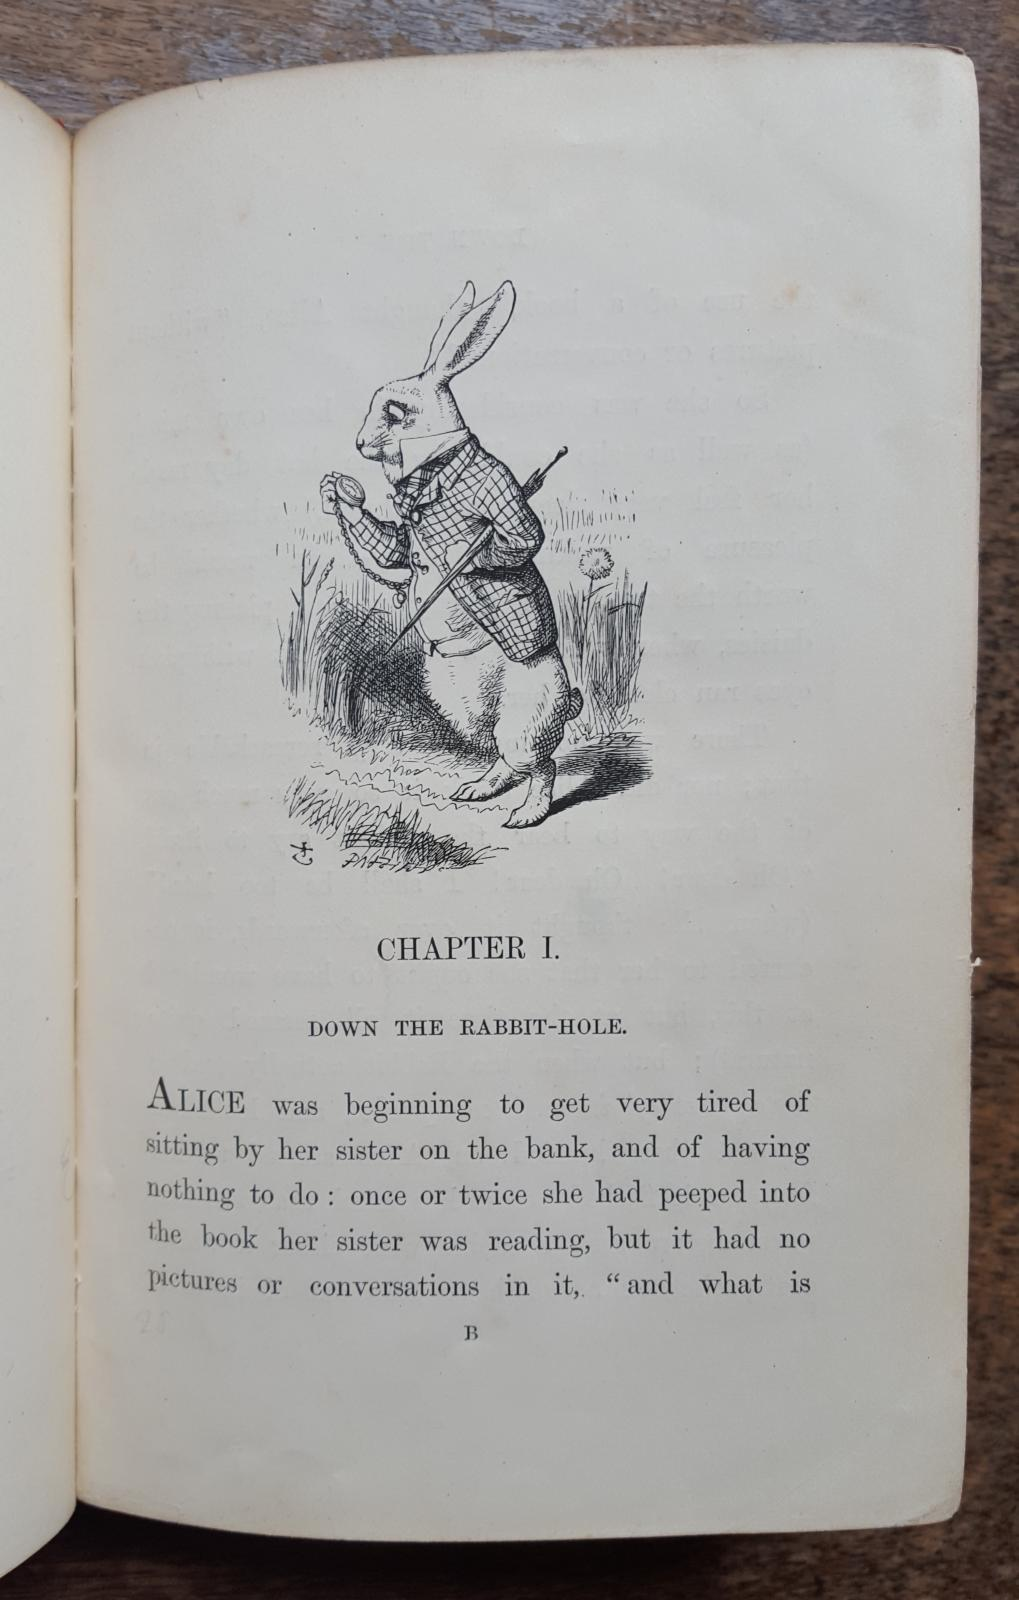 LMH's copy of Alice in Wonderland